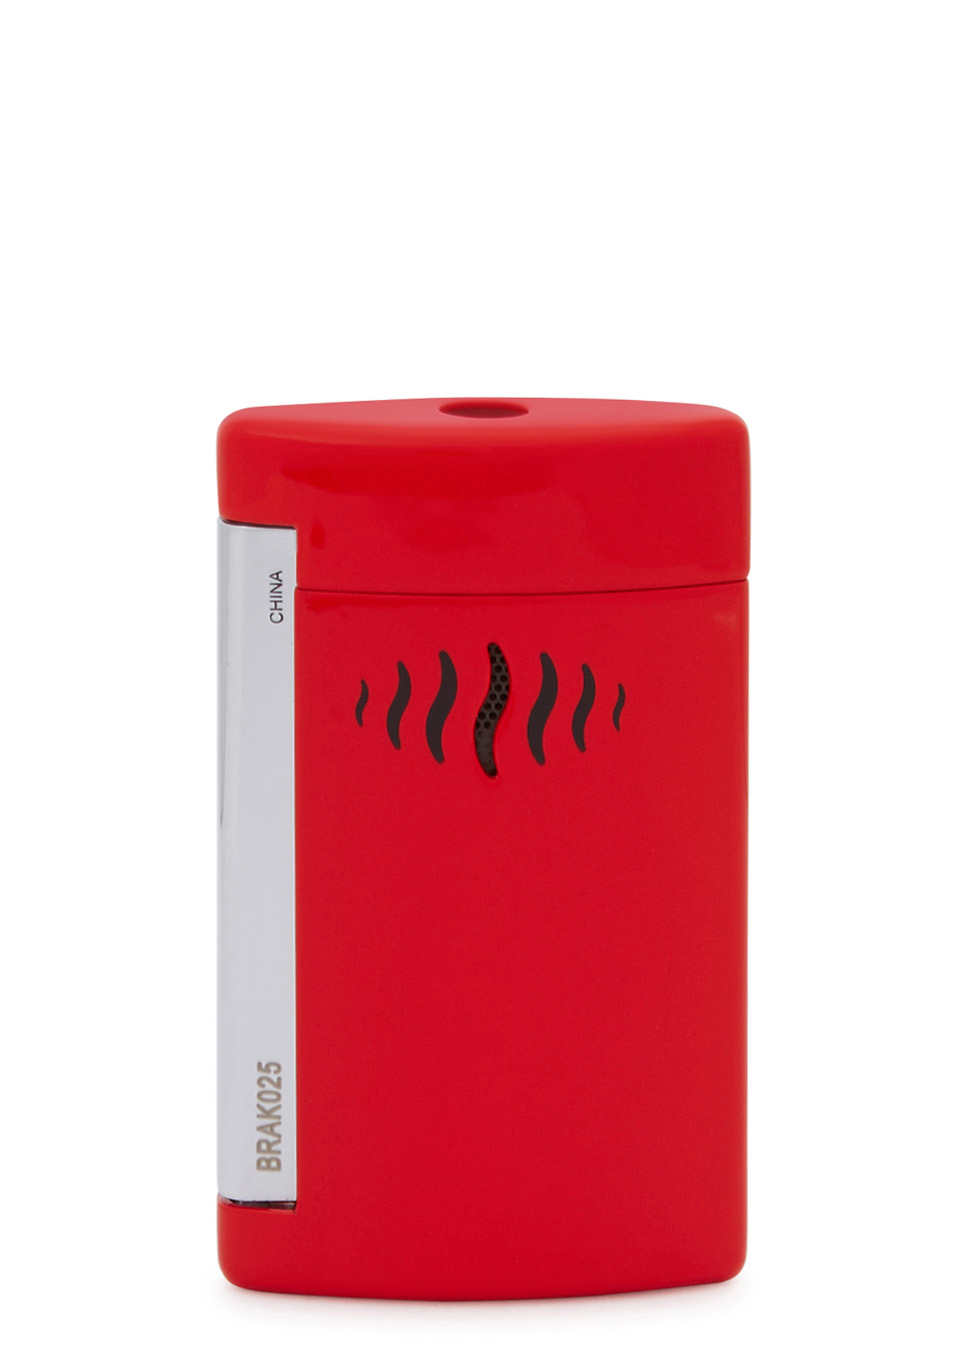 Minijet bright red lacquered lighter - S.T. Dupont